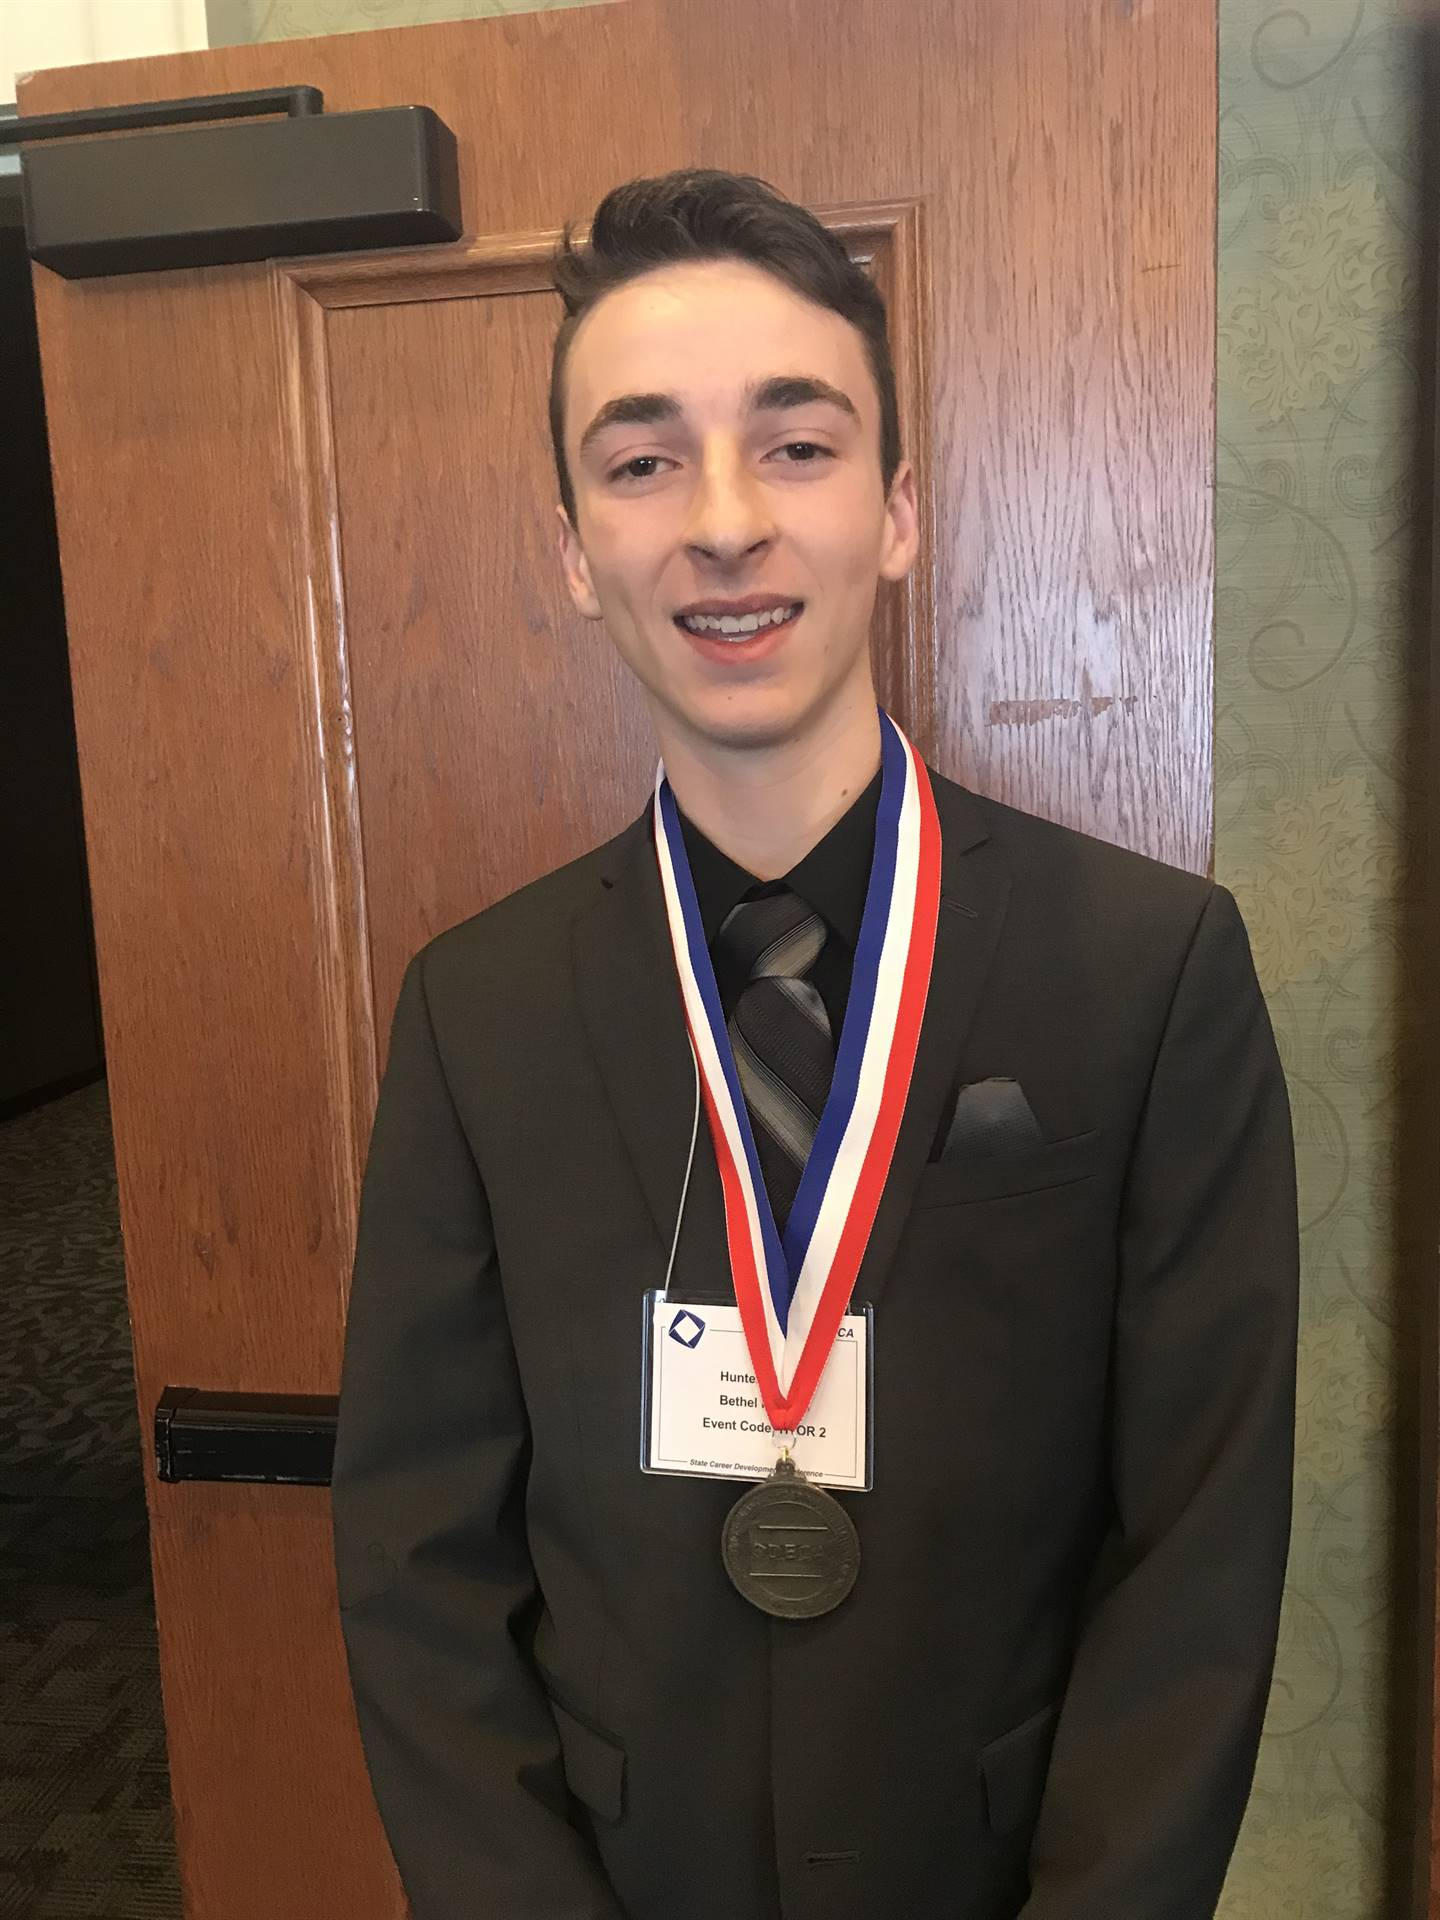 Student with a medal